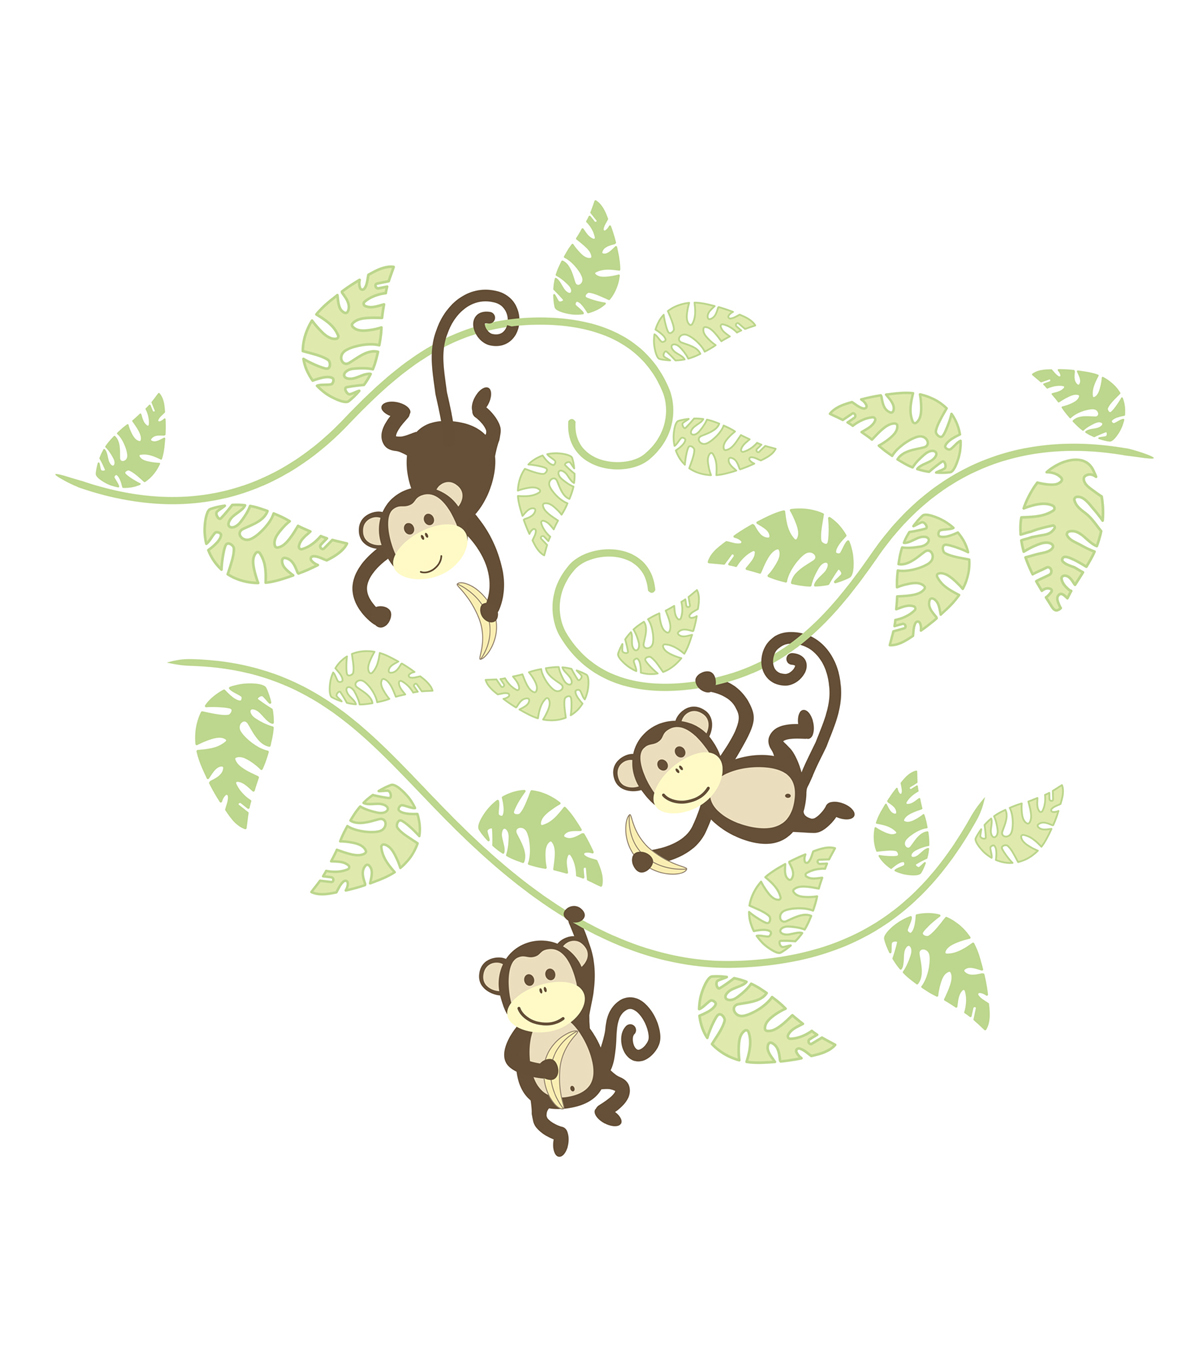 Wall Pops Monkeying Around Wall Art Decal Kit, 36 Piece Set